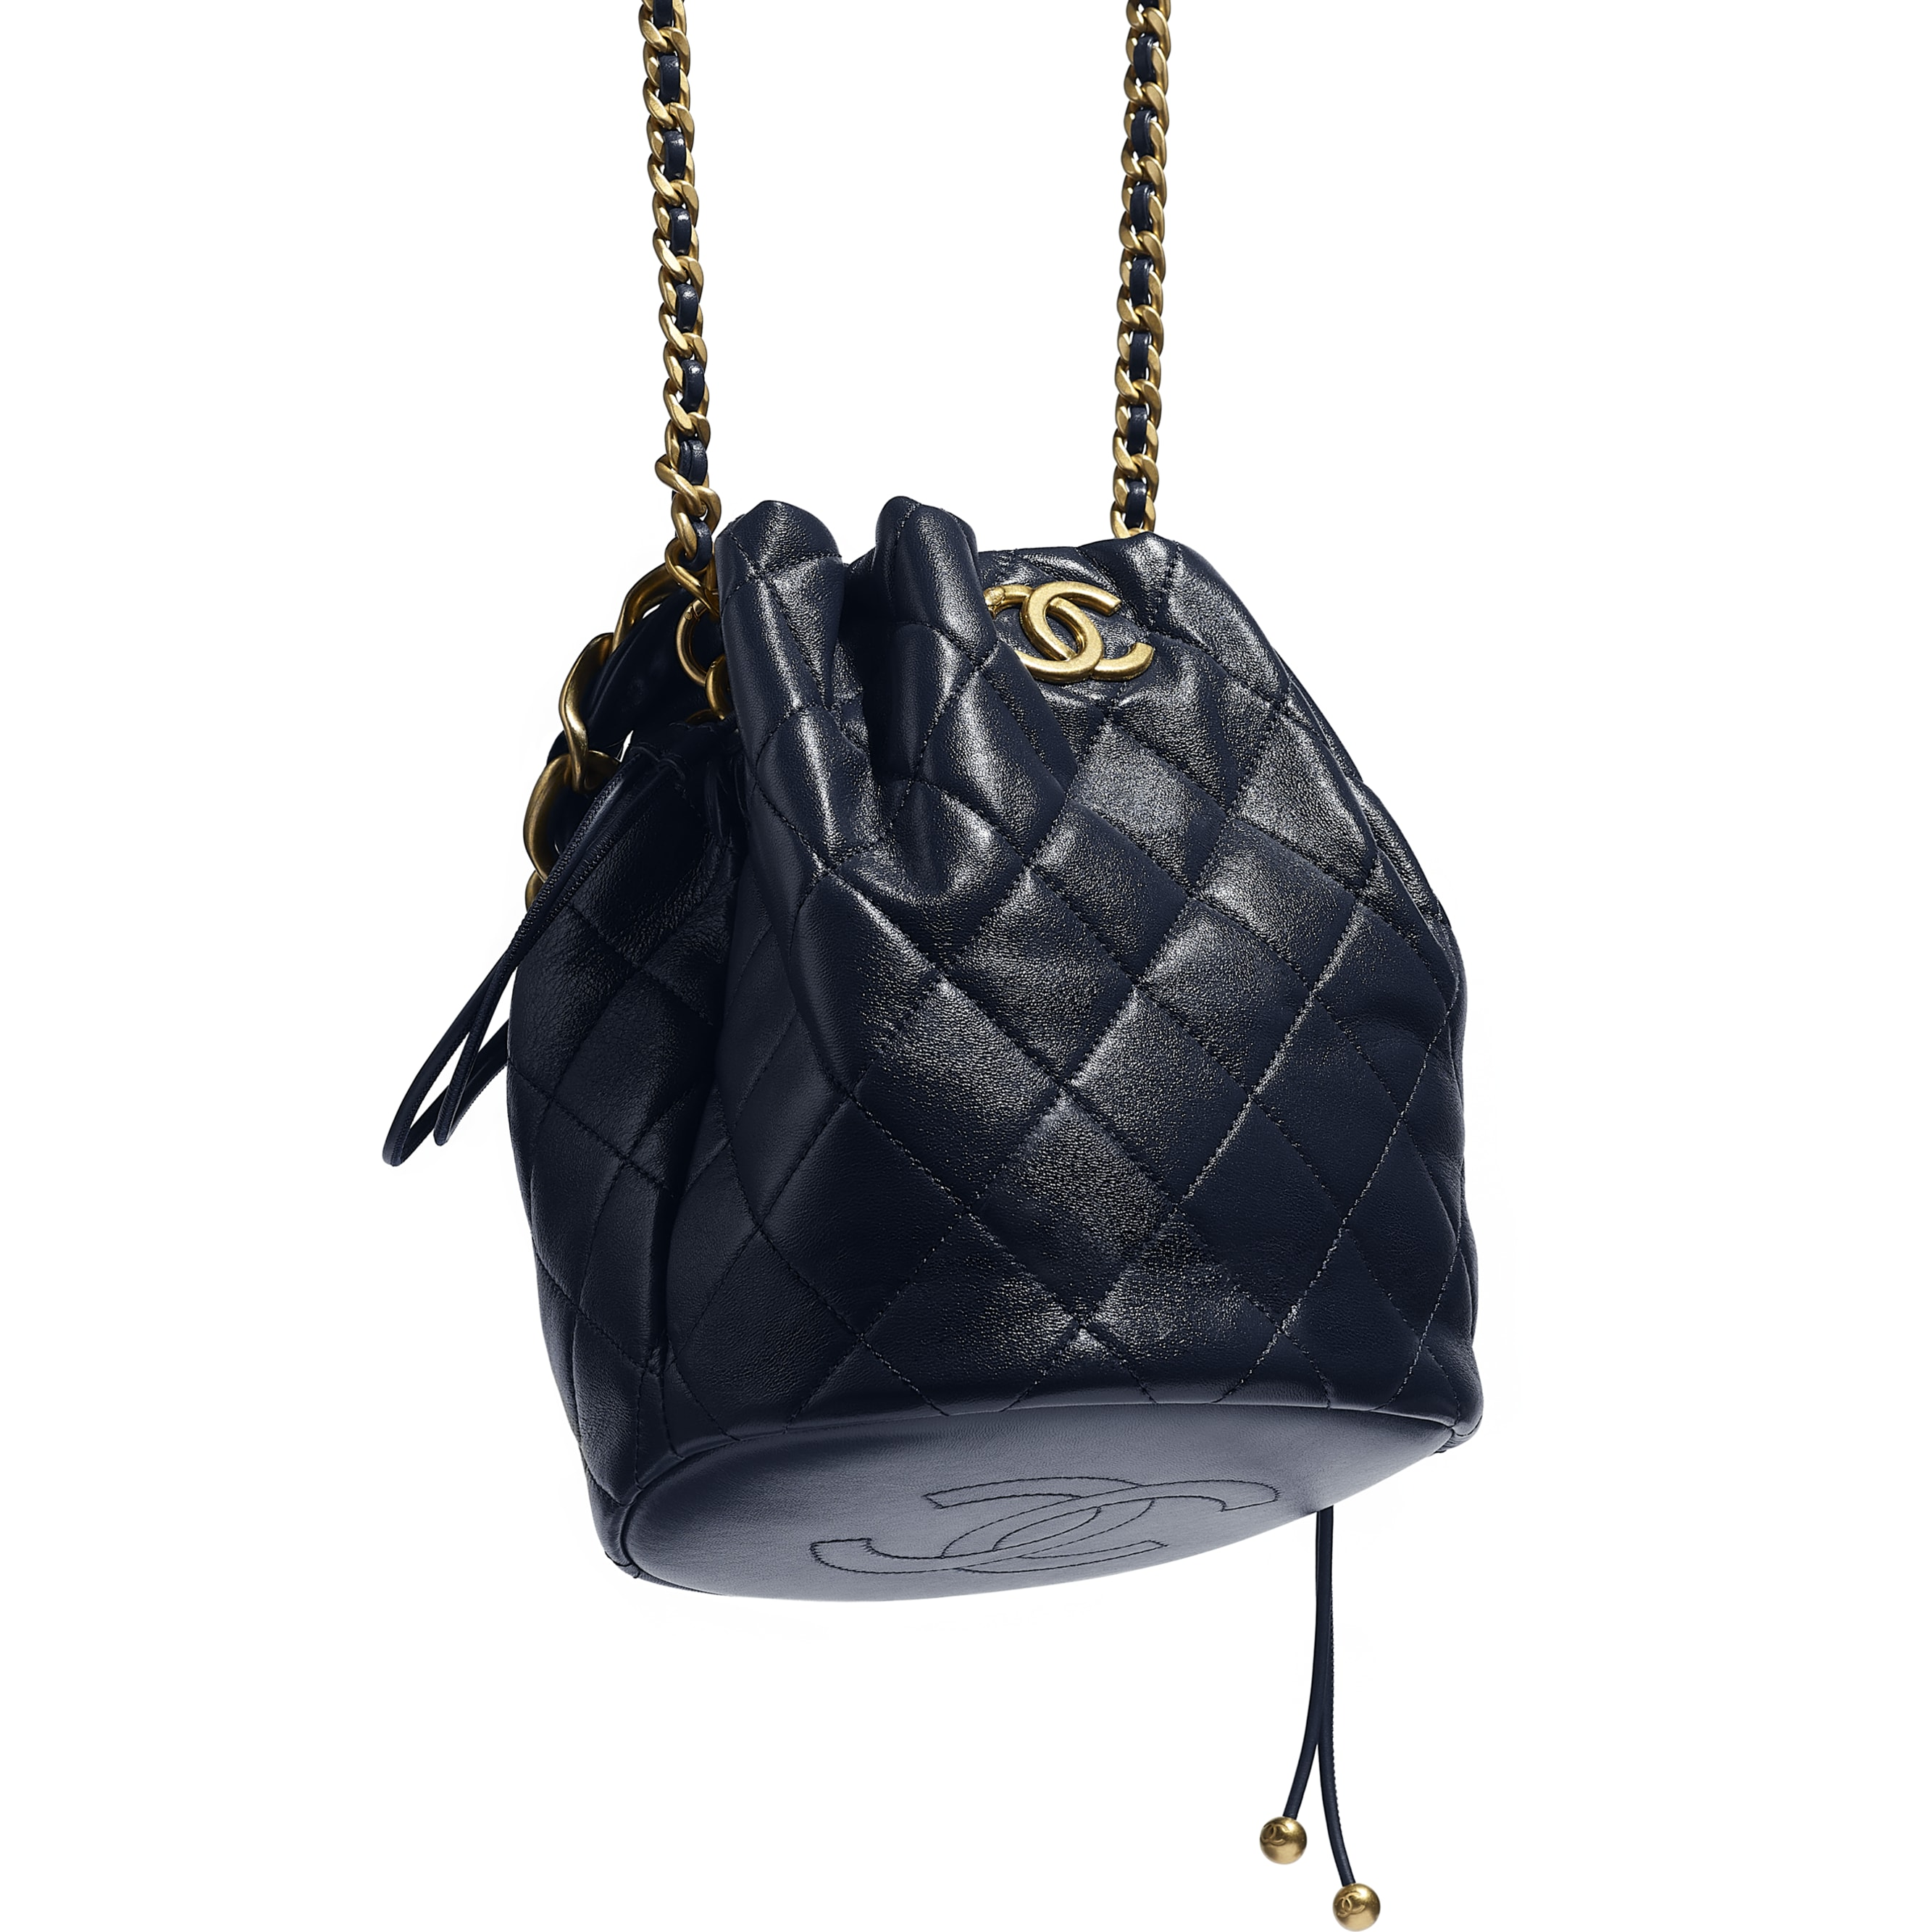 Large Drawstring Bag - Navy Blue - Shiny Lambskin & Gold-Tone Metal - CHANEL - Extra view - see standard sized version